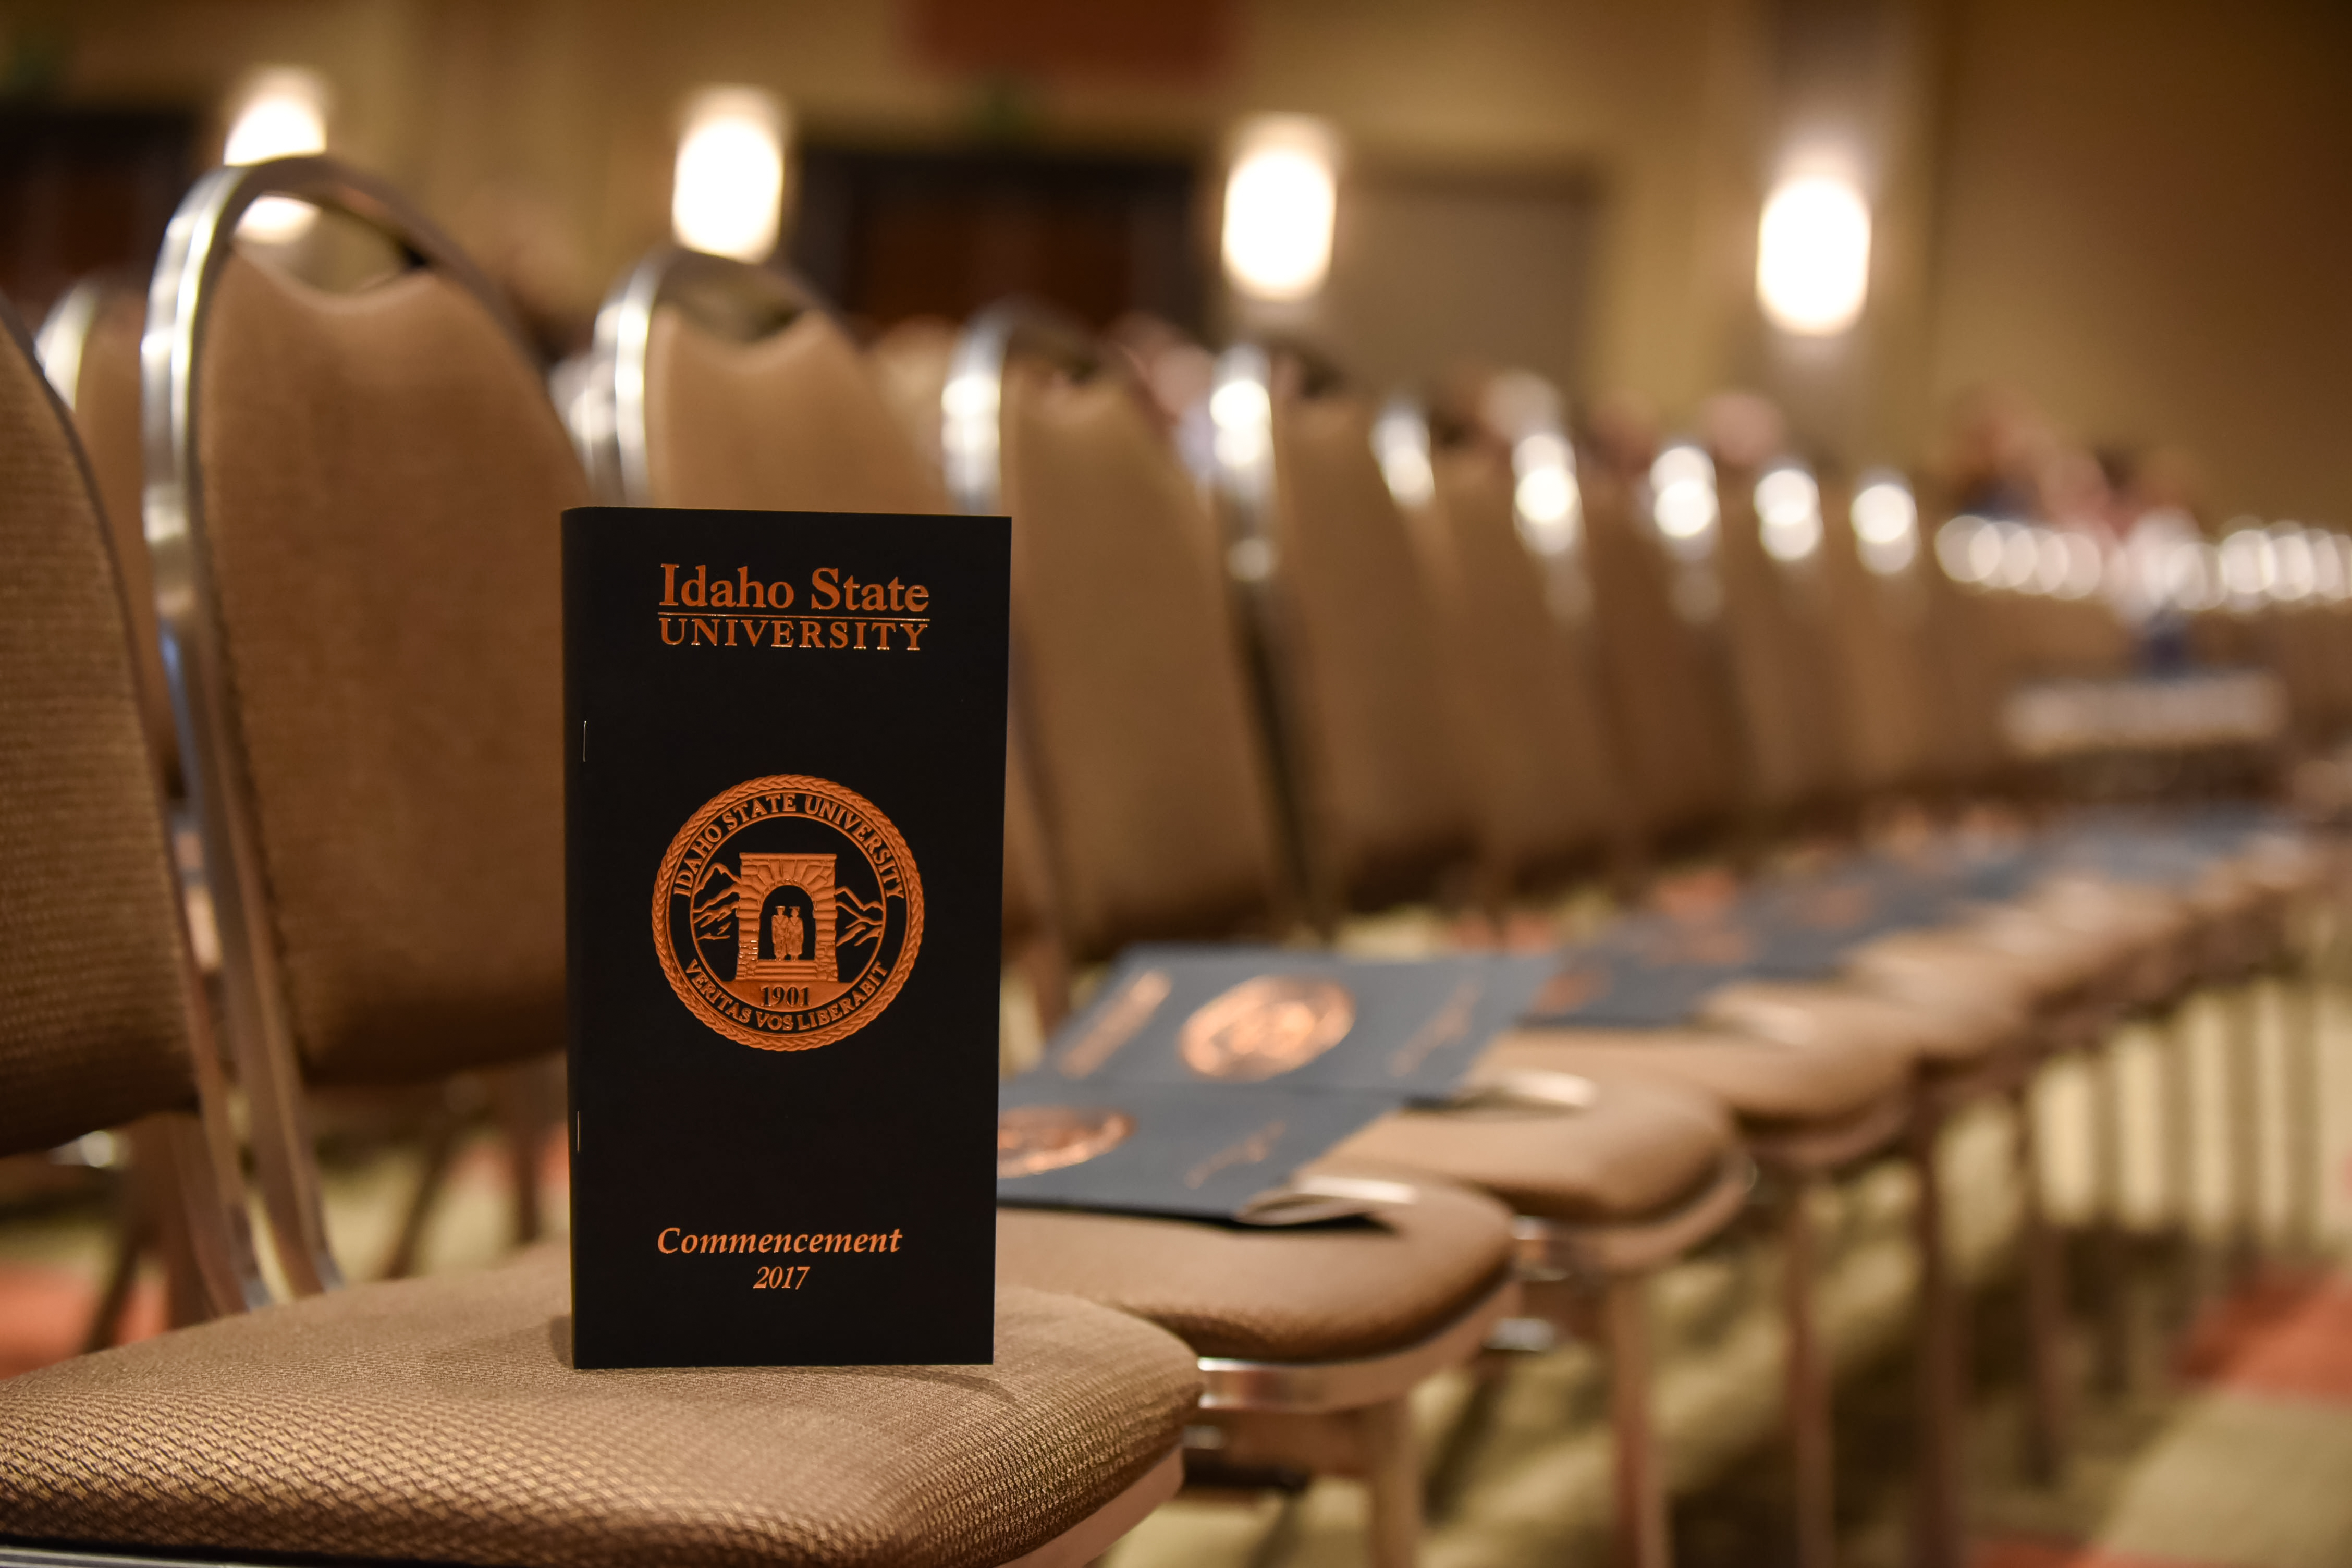 Commencement programs on chairs before the ceremony